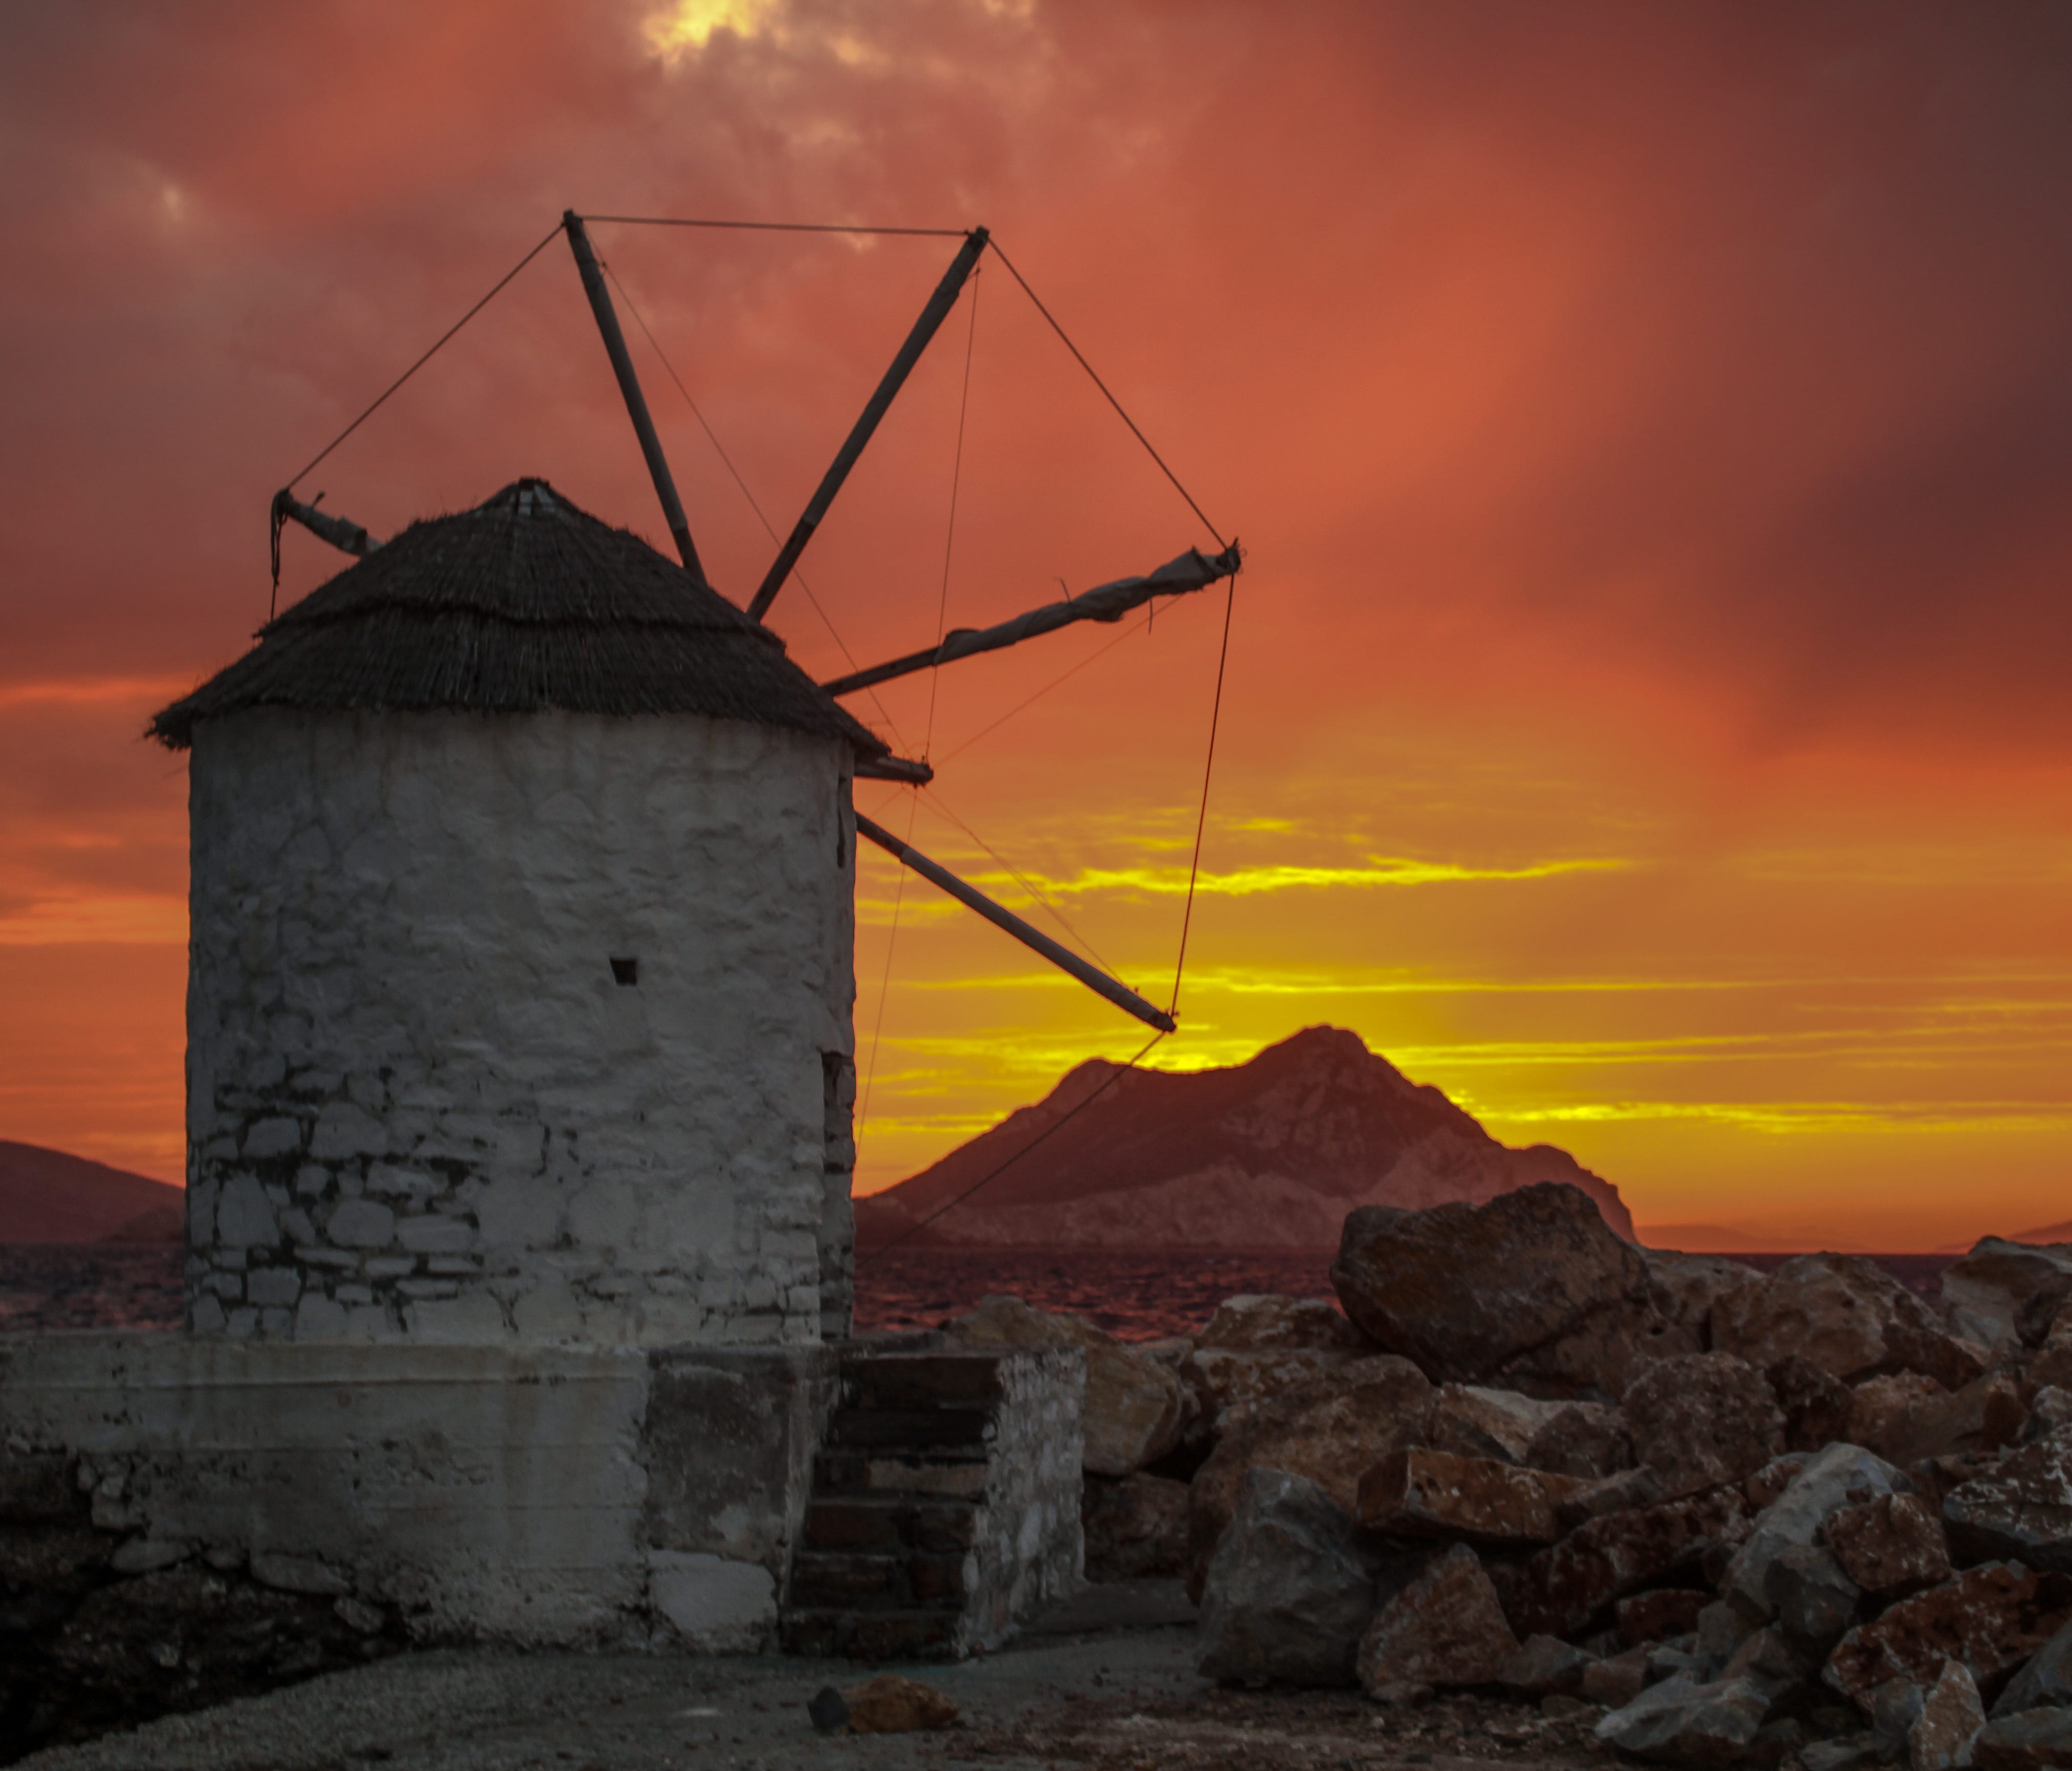 Amorgos Island boasts some of the most jaw-dropping sunsets in the Aegean Sea.